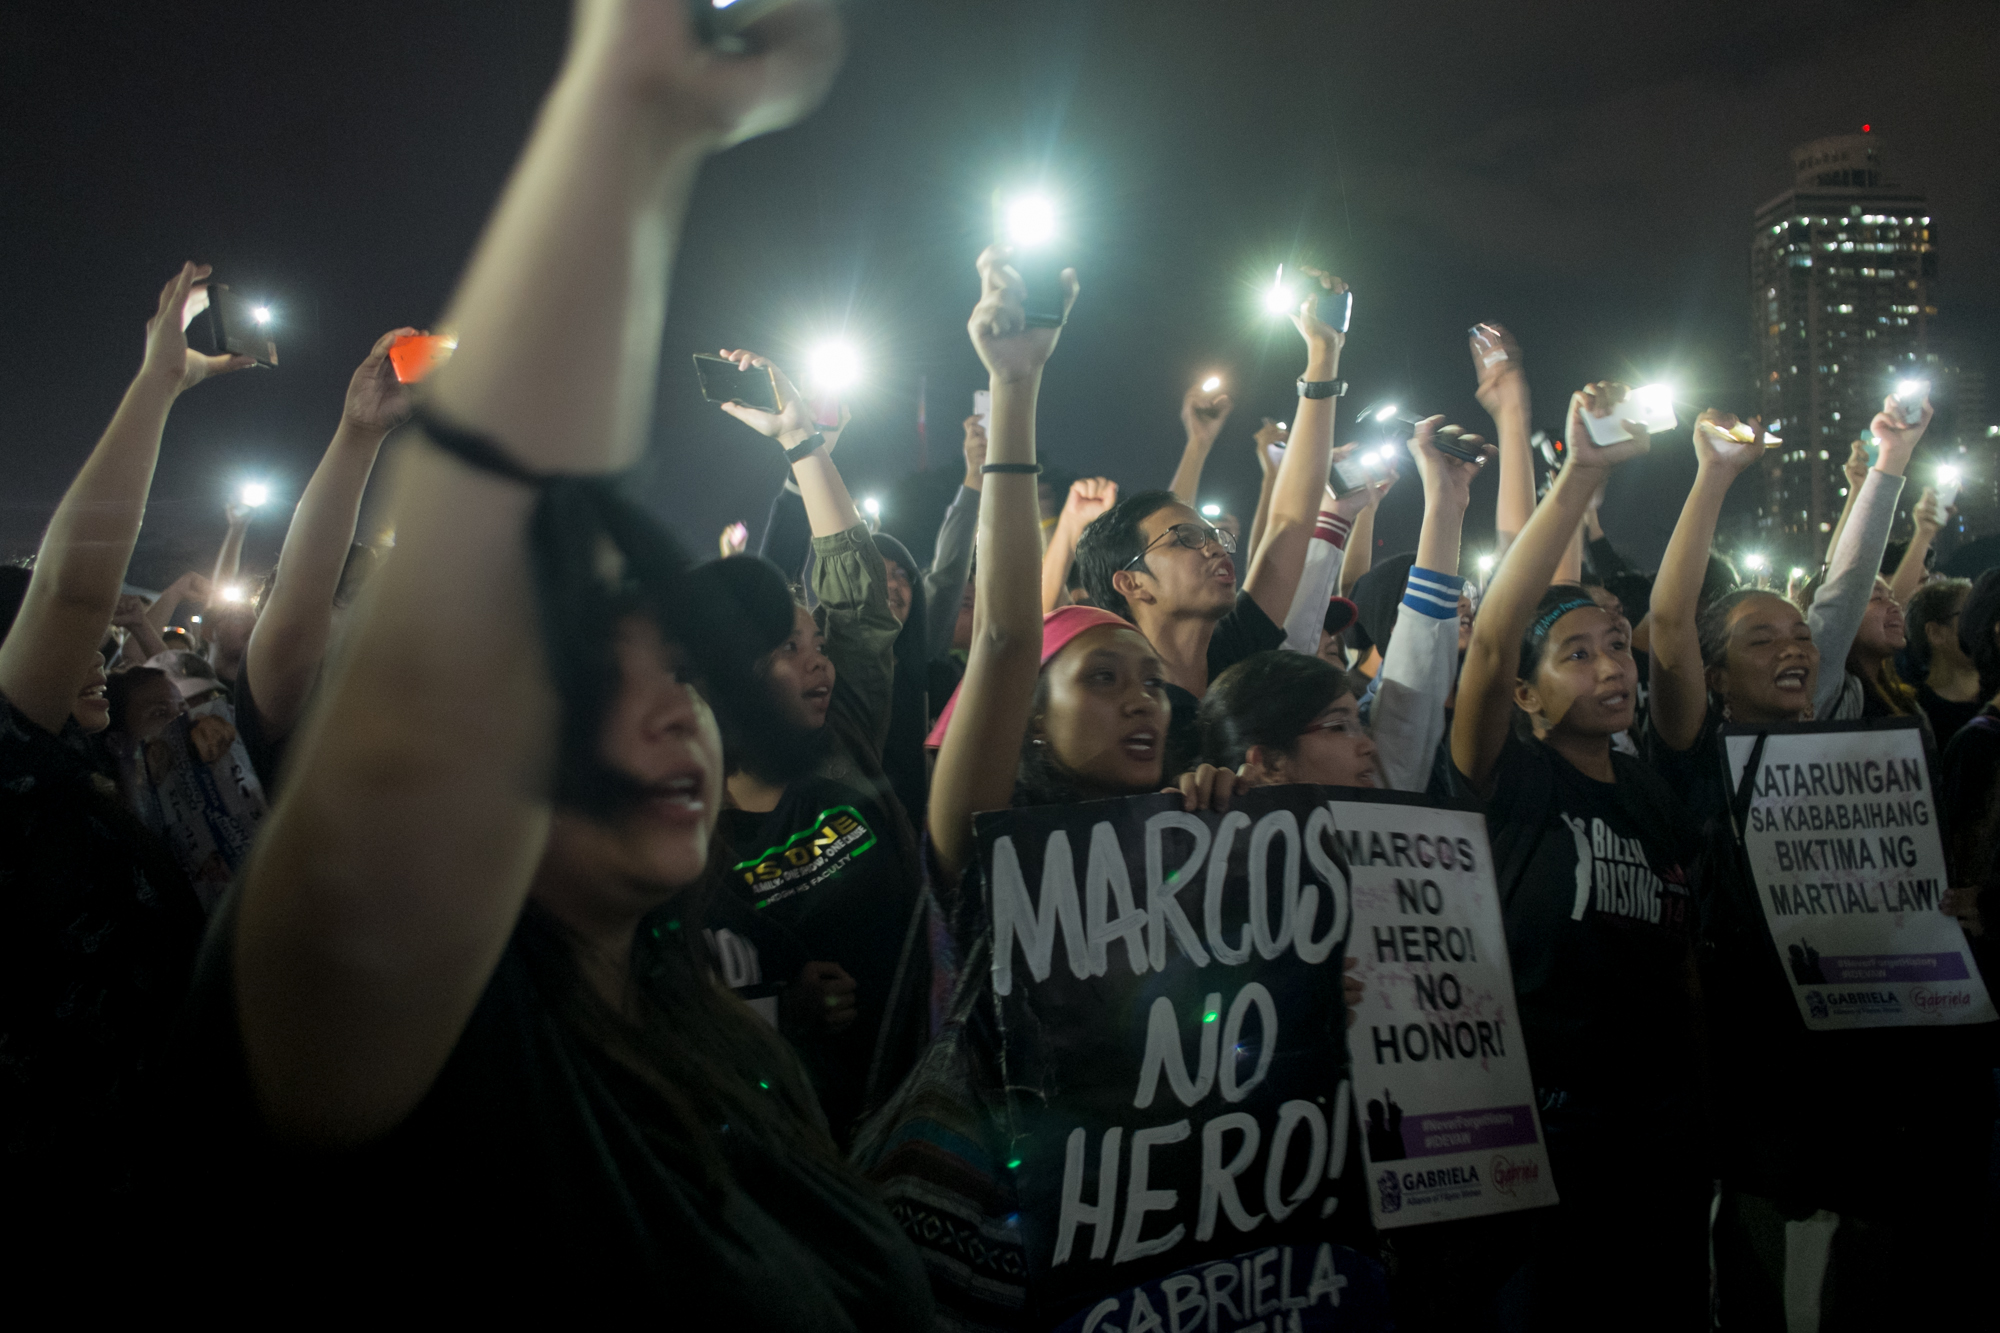 NEW WAVE. A new generation of anti-Marcos protesters at the Luneta on Friday, November 25. Photo by Melvyn Calderon